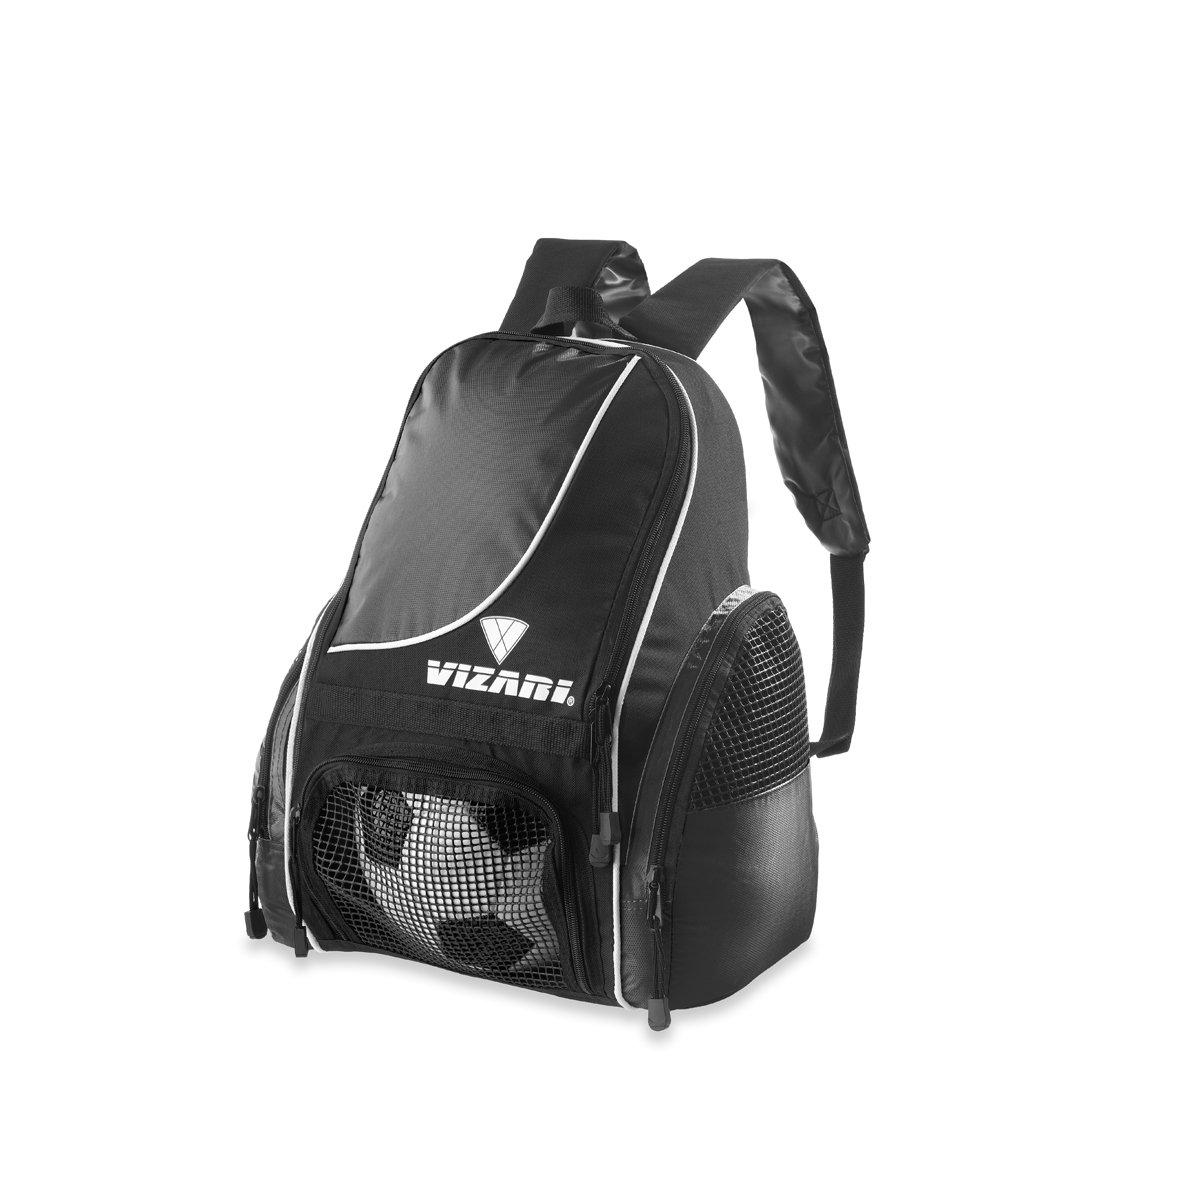 5bce53a84d Best Rated in Soccer Equipment Bags   Helpful Customer Reviews ...